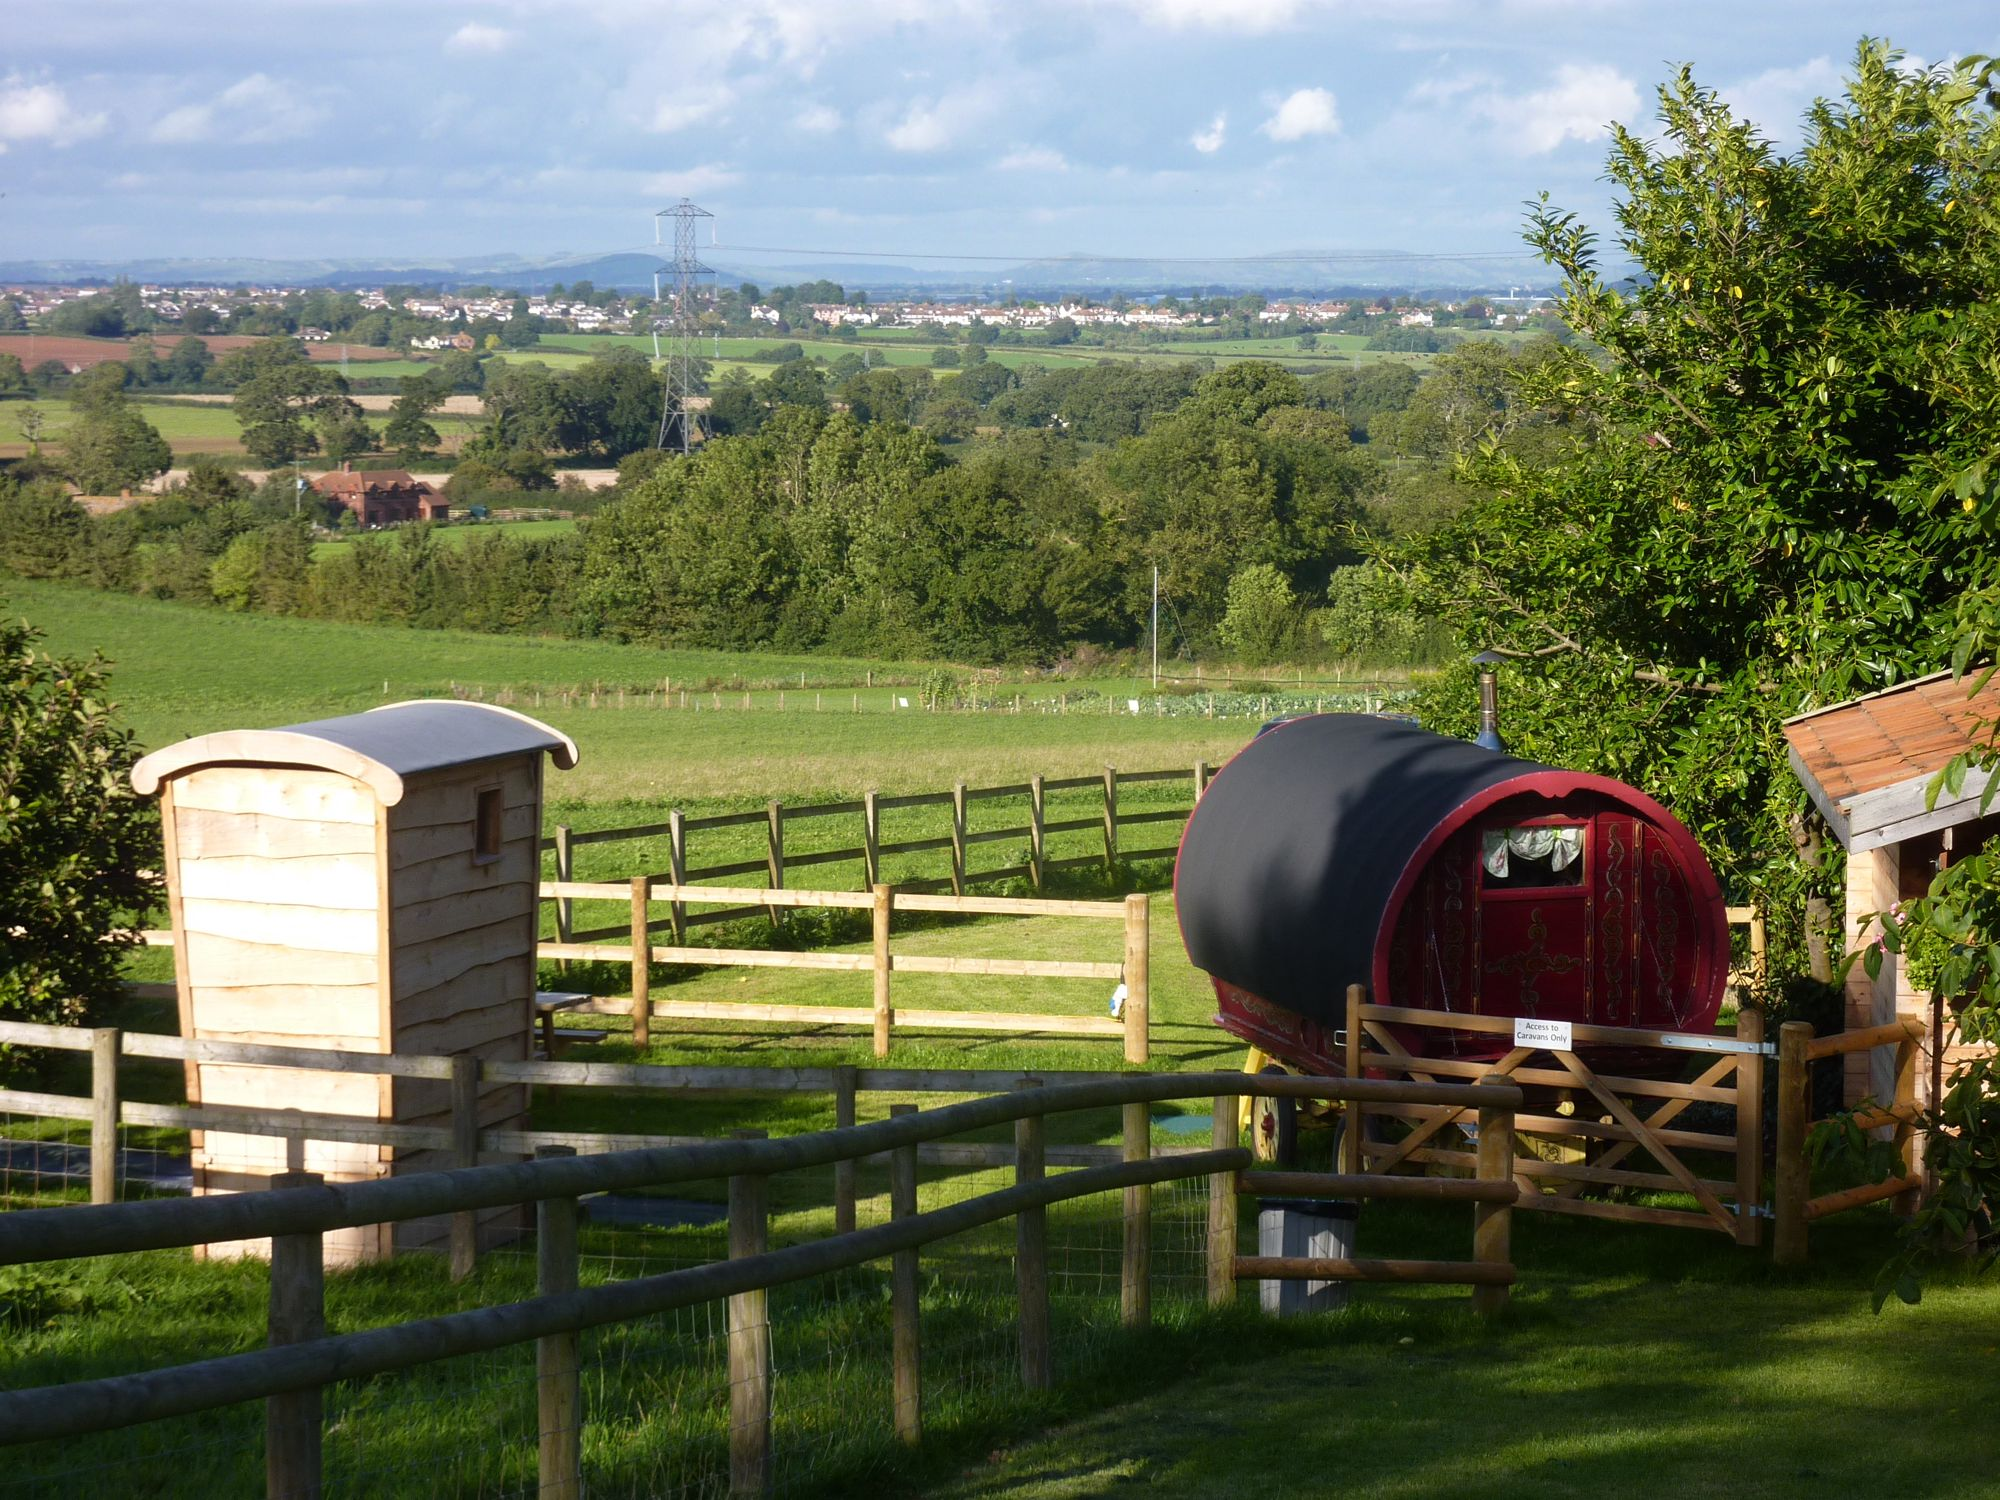 Campsites in the Quantock Hills Area of Outstanding Natural Beauty